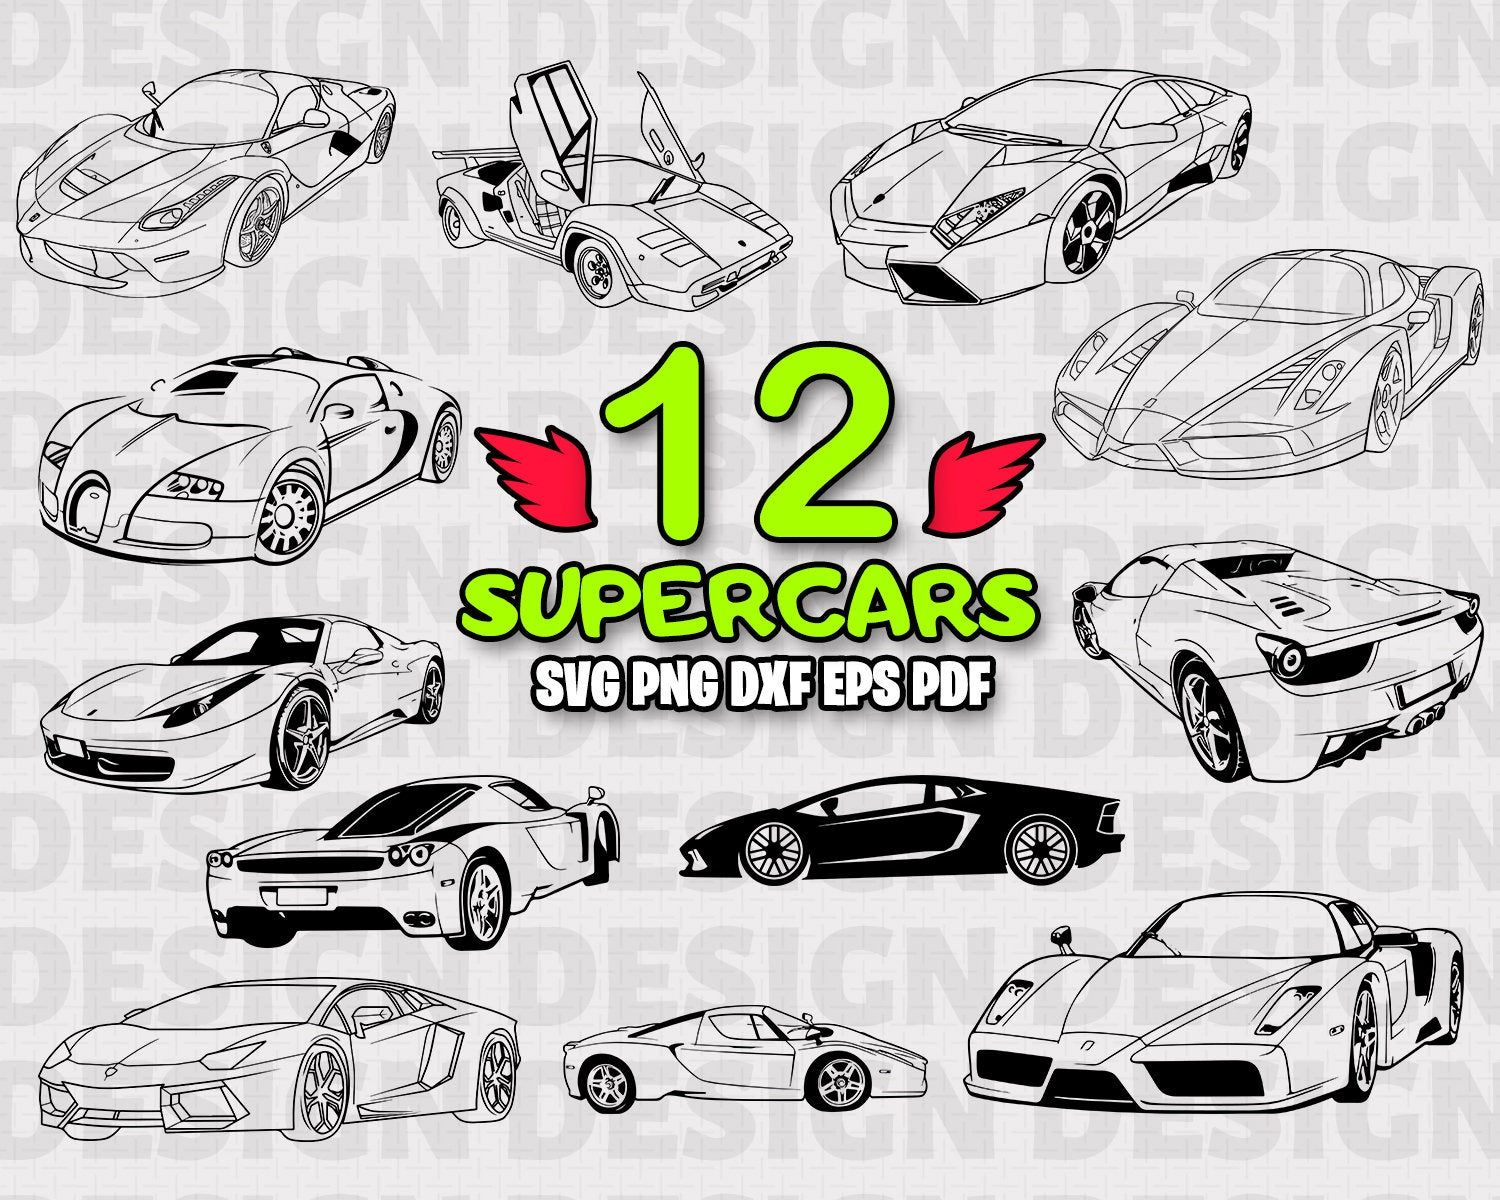 Supercars Svg Car Decor Supercars Svg Files Cricut Svg Silhouette Car Svg Vinyl Sports Car Svg Super Car Svg C Super Cars Classic Cars Line Art Design